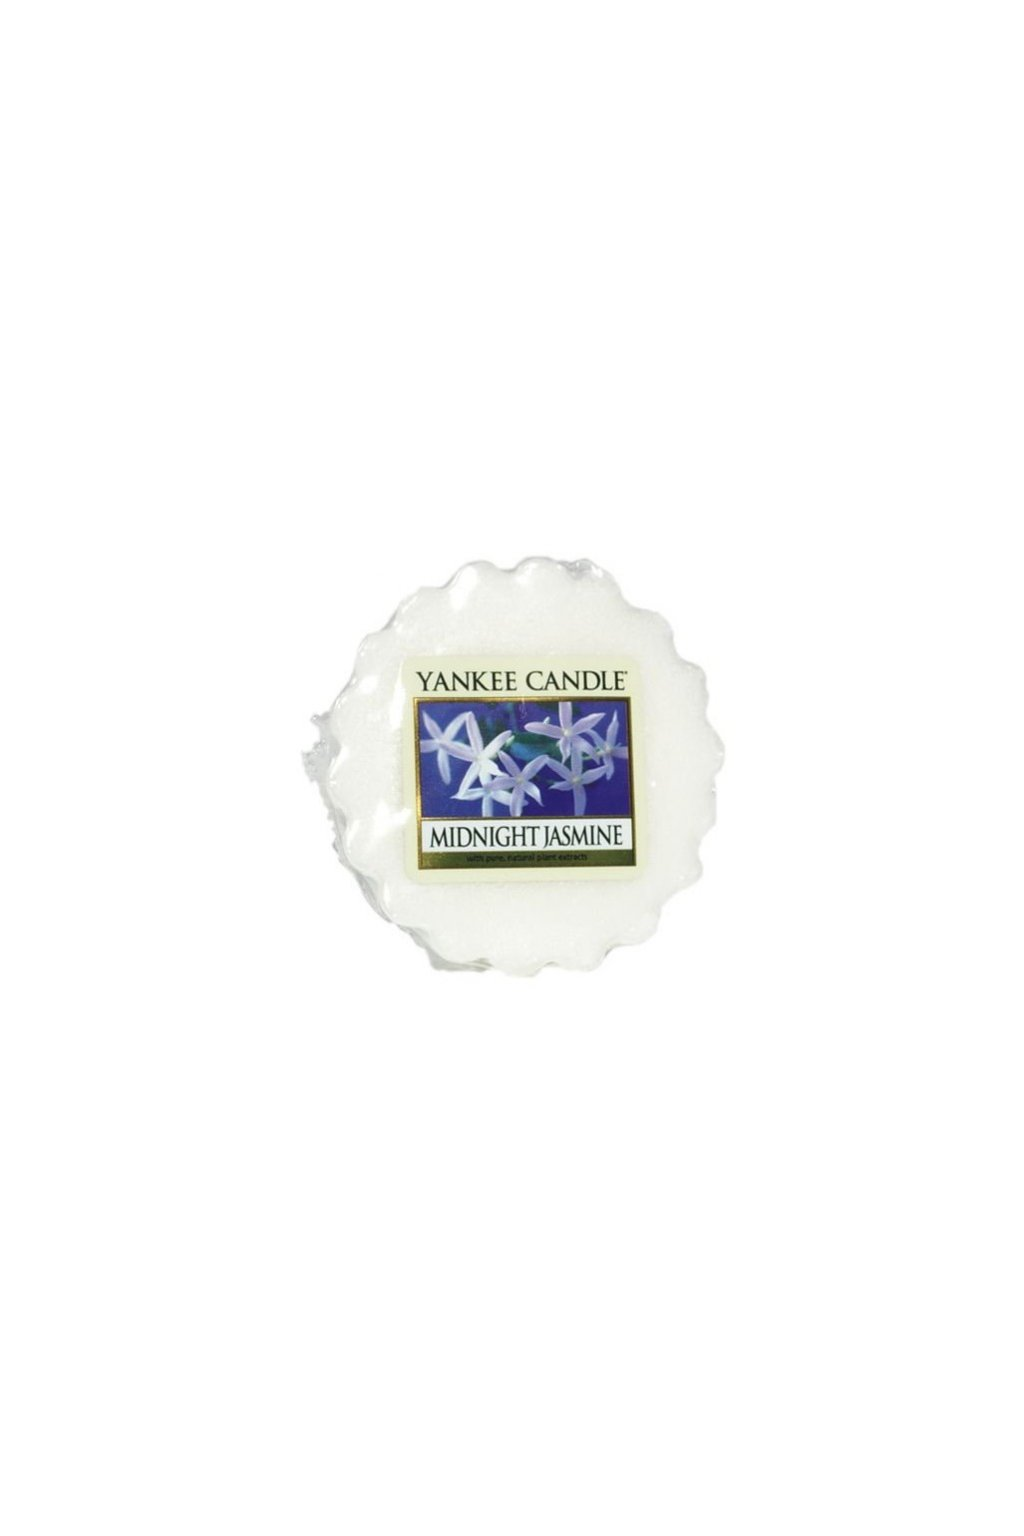 Yankee Candle Midnight Jasmine 22g